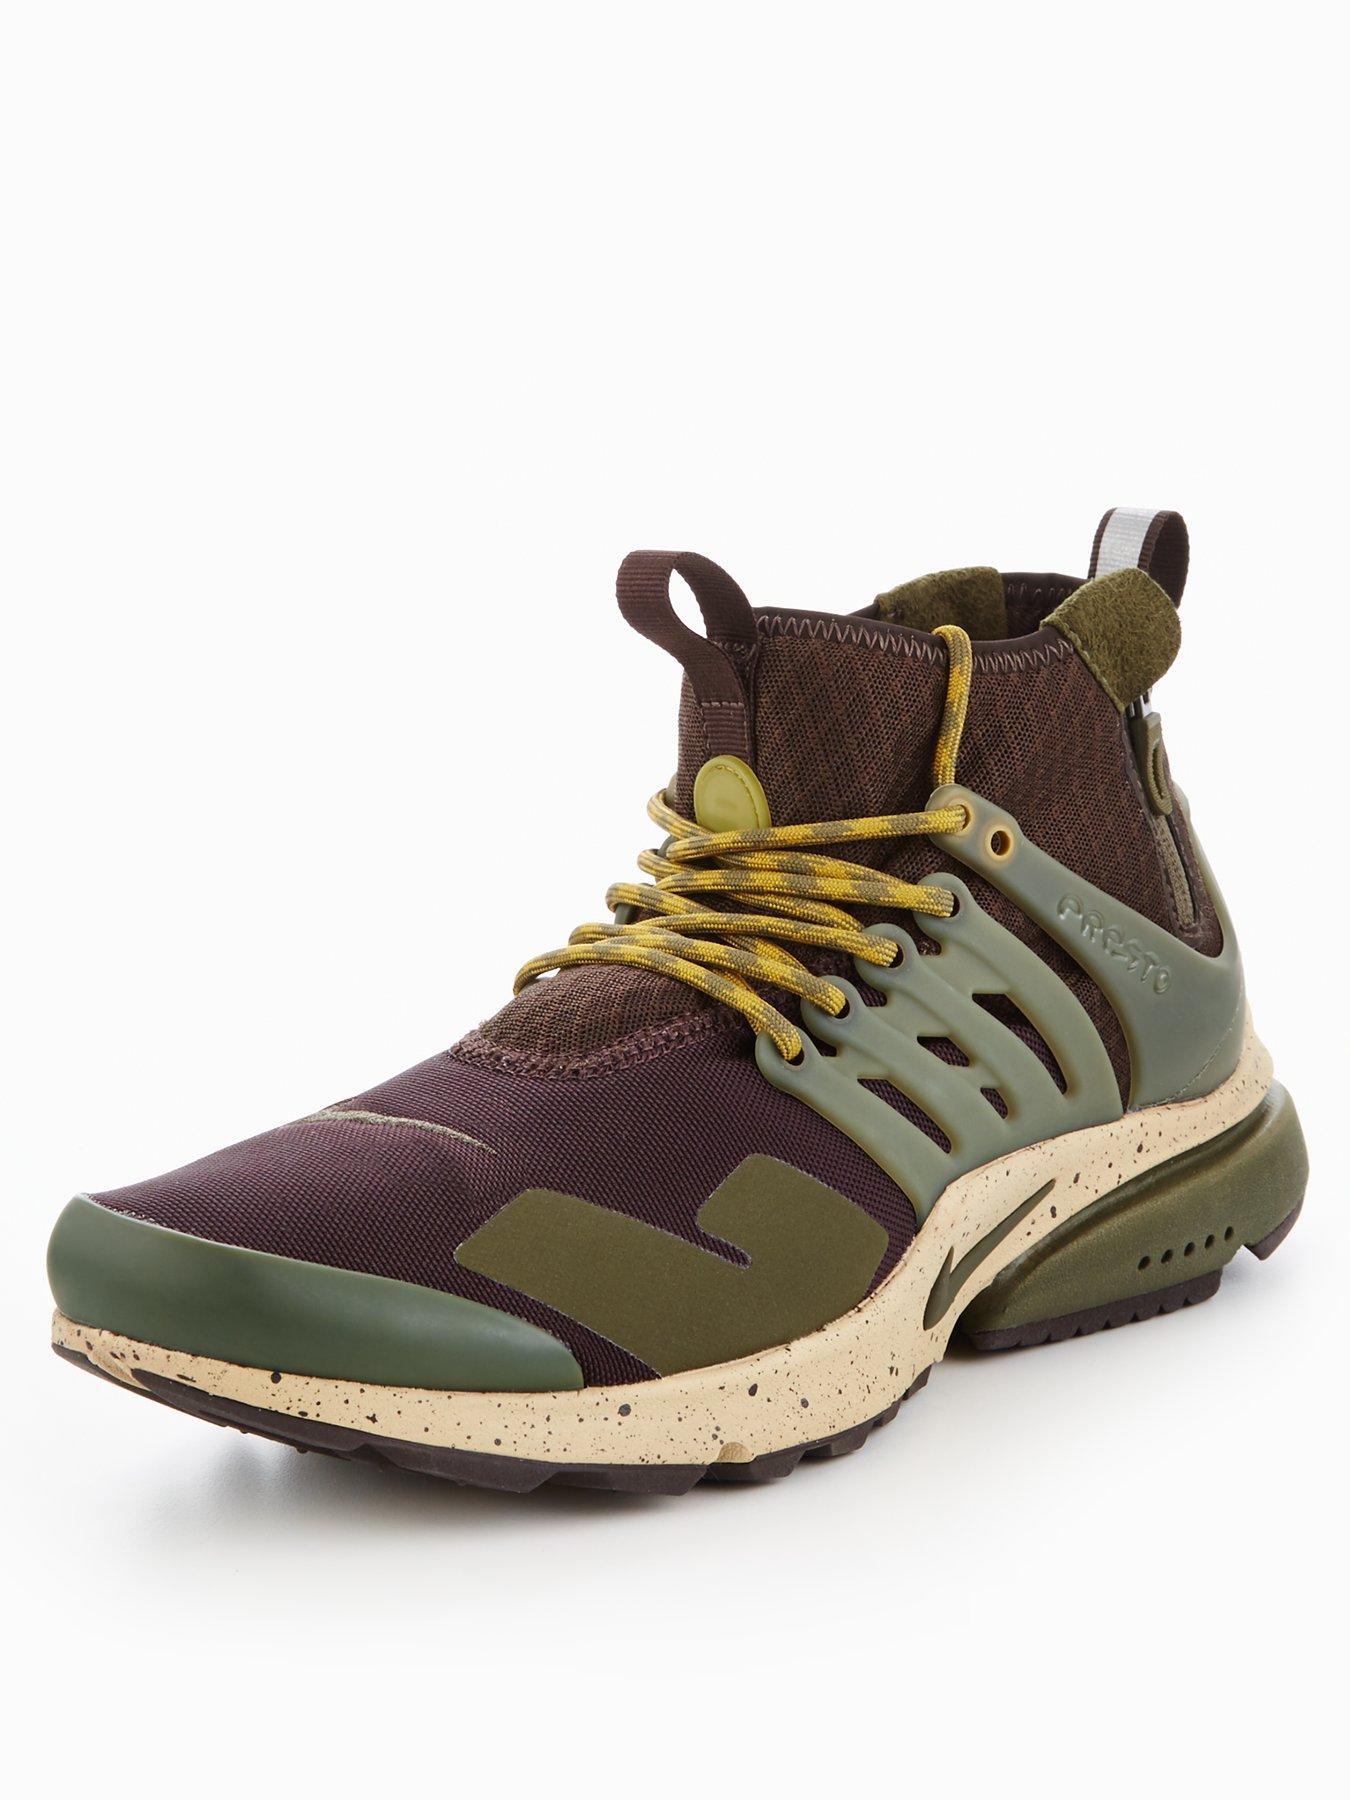 Nike Air Presto Mid Utility 1600183022 Men's Shoes Nike Trainers